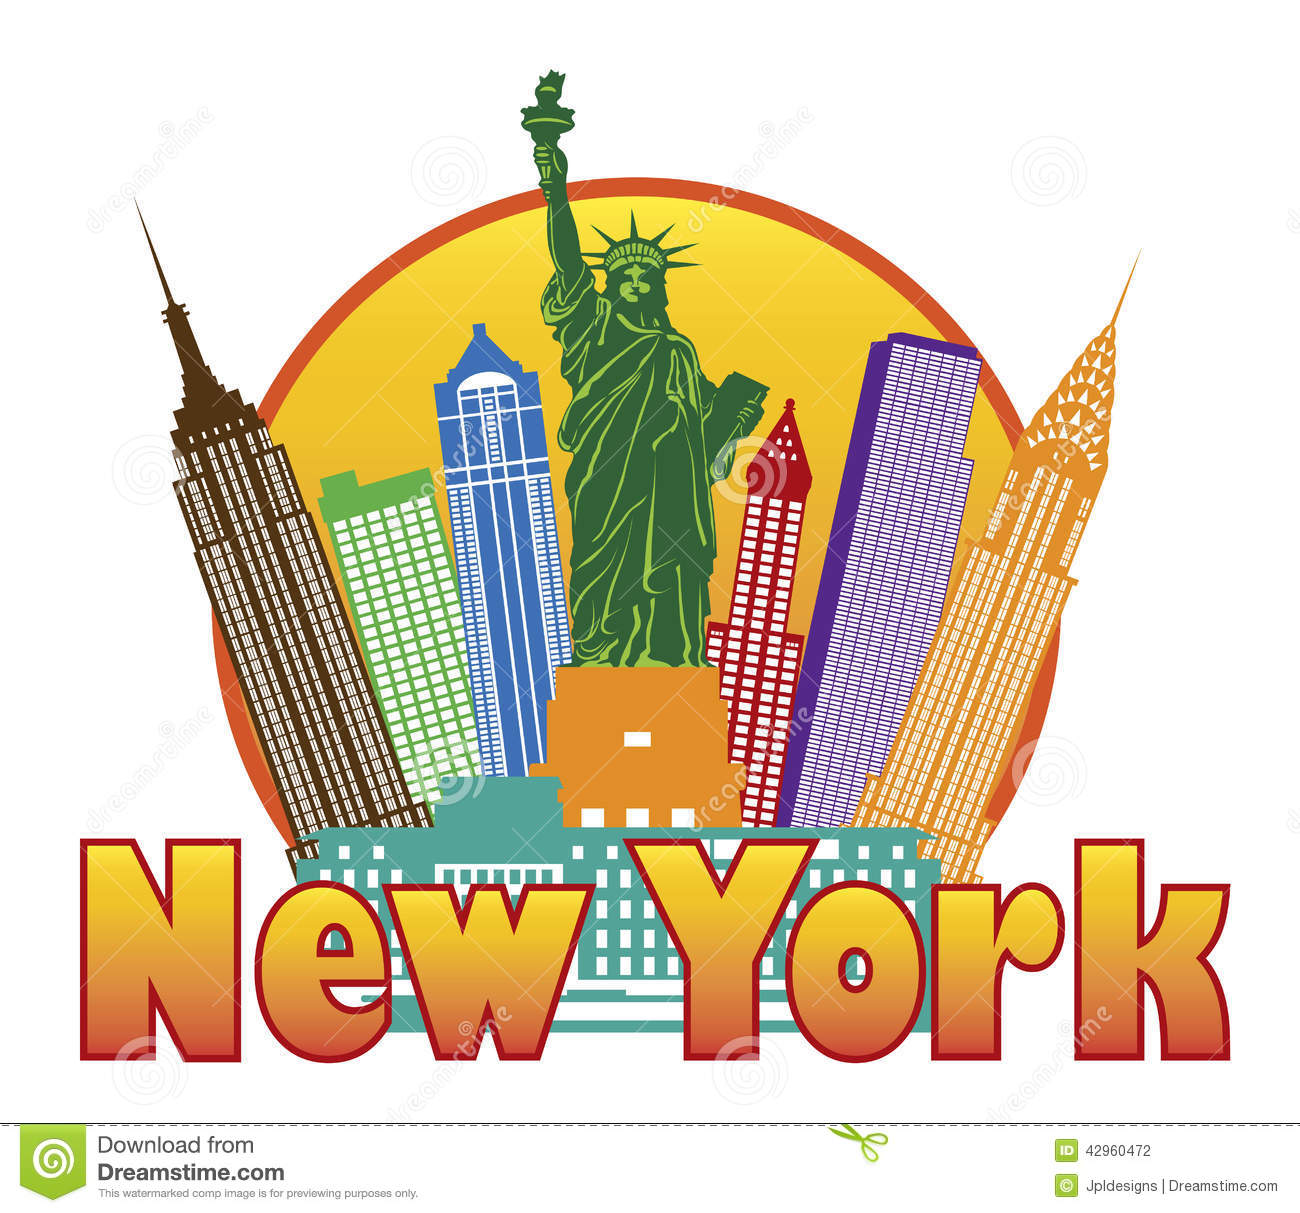 New York City Colorful Skyline With Stat-New York City Colorful Skyline With Statue Of Liberty In Circle-9